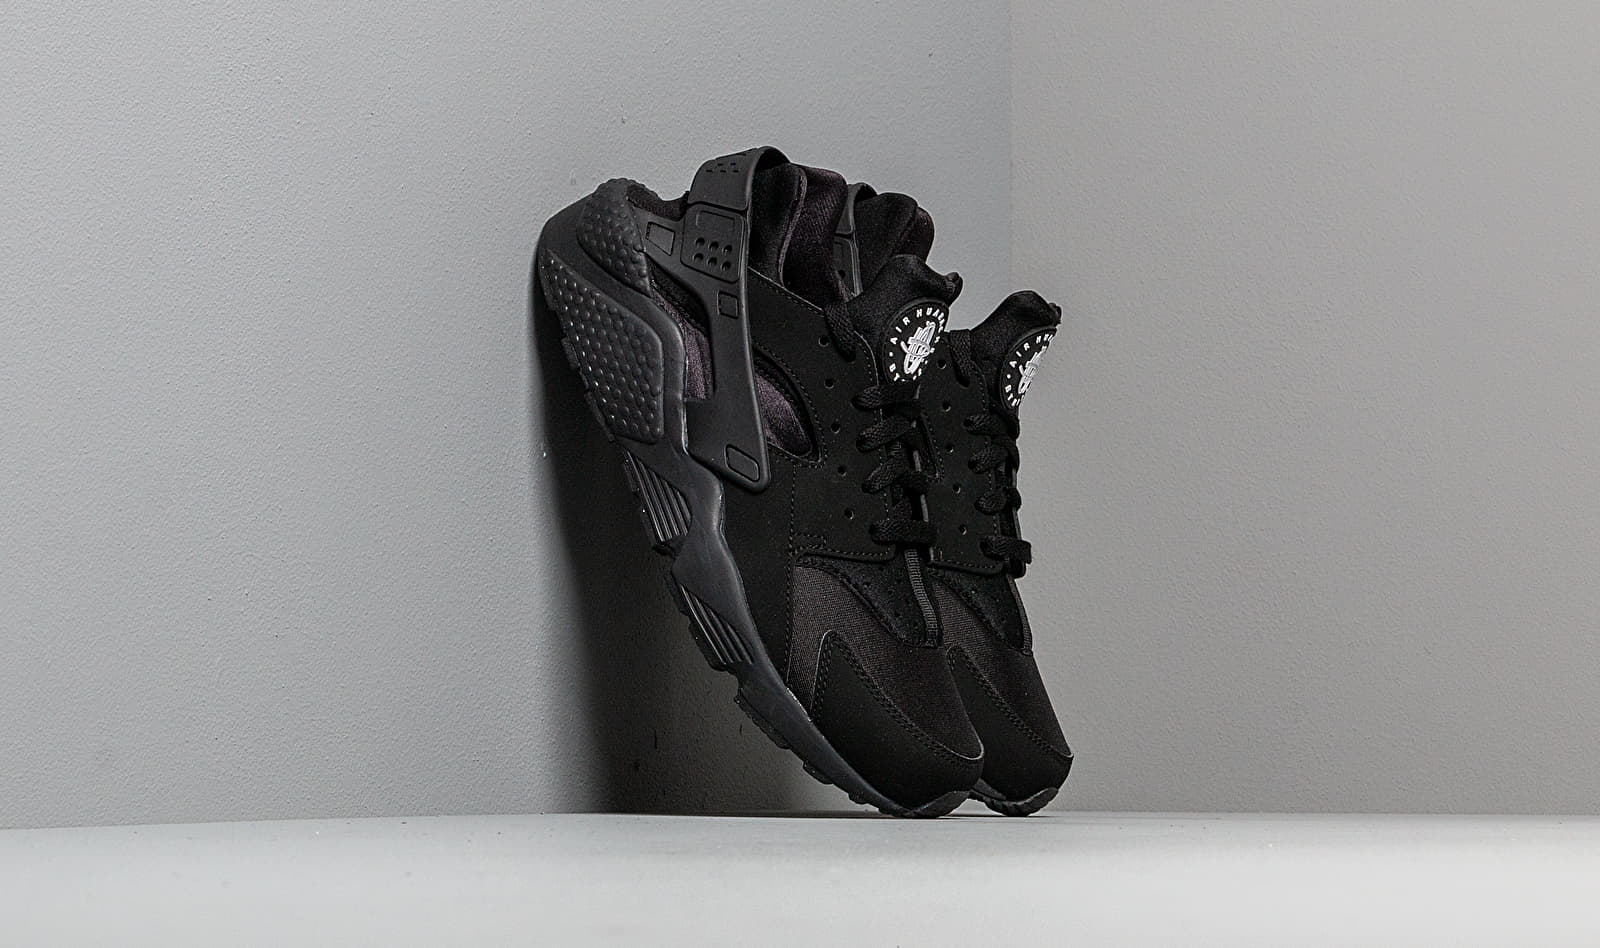 Nike Air Huarache Black/Black EUR 42.5